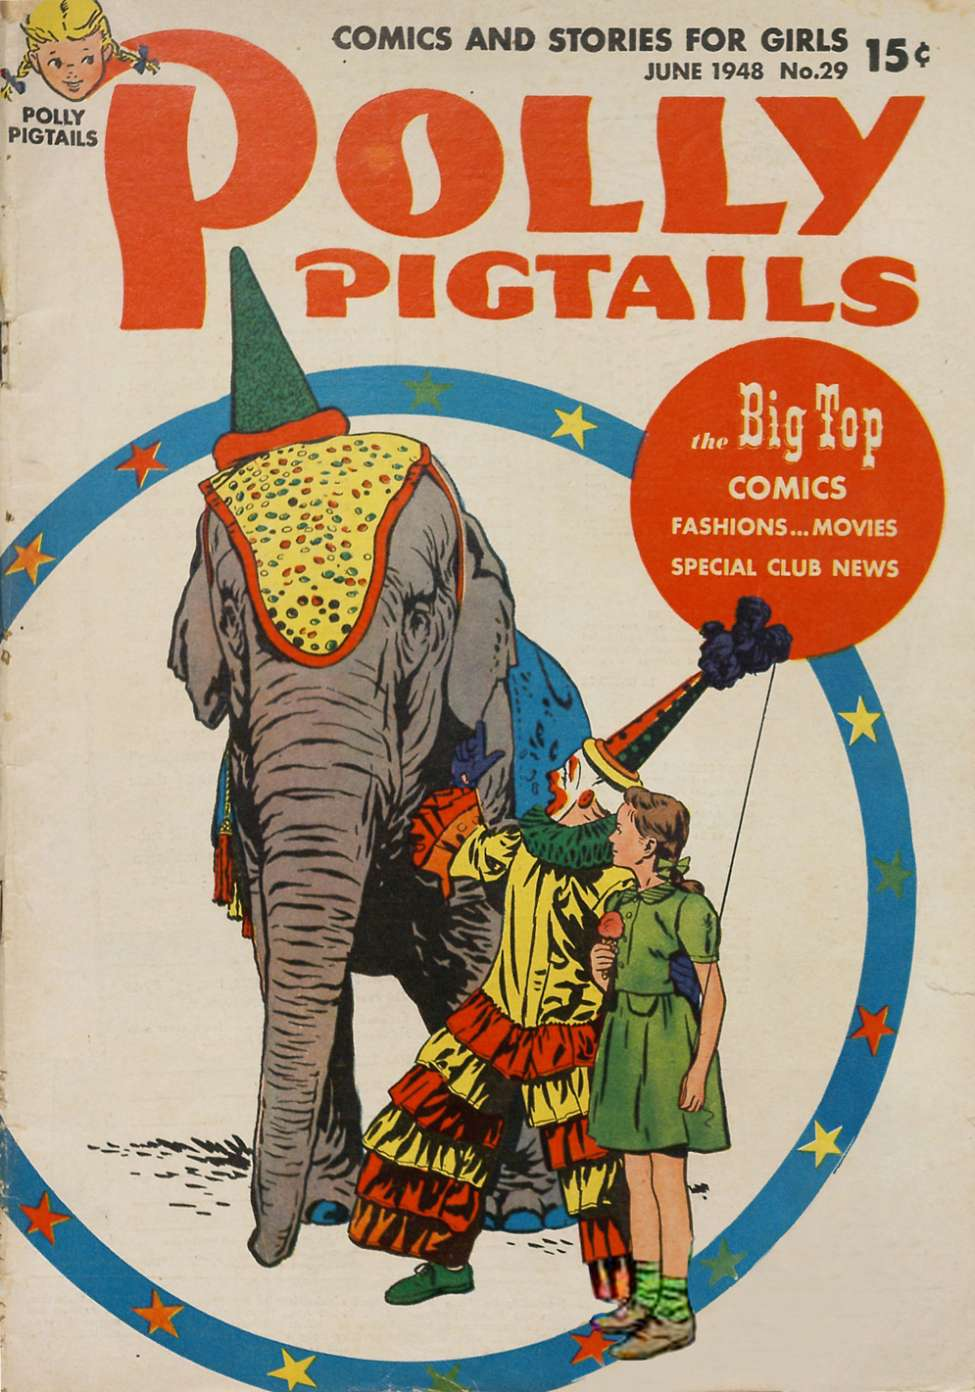 Comic Book Cover For Polly Pigtails #29